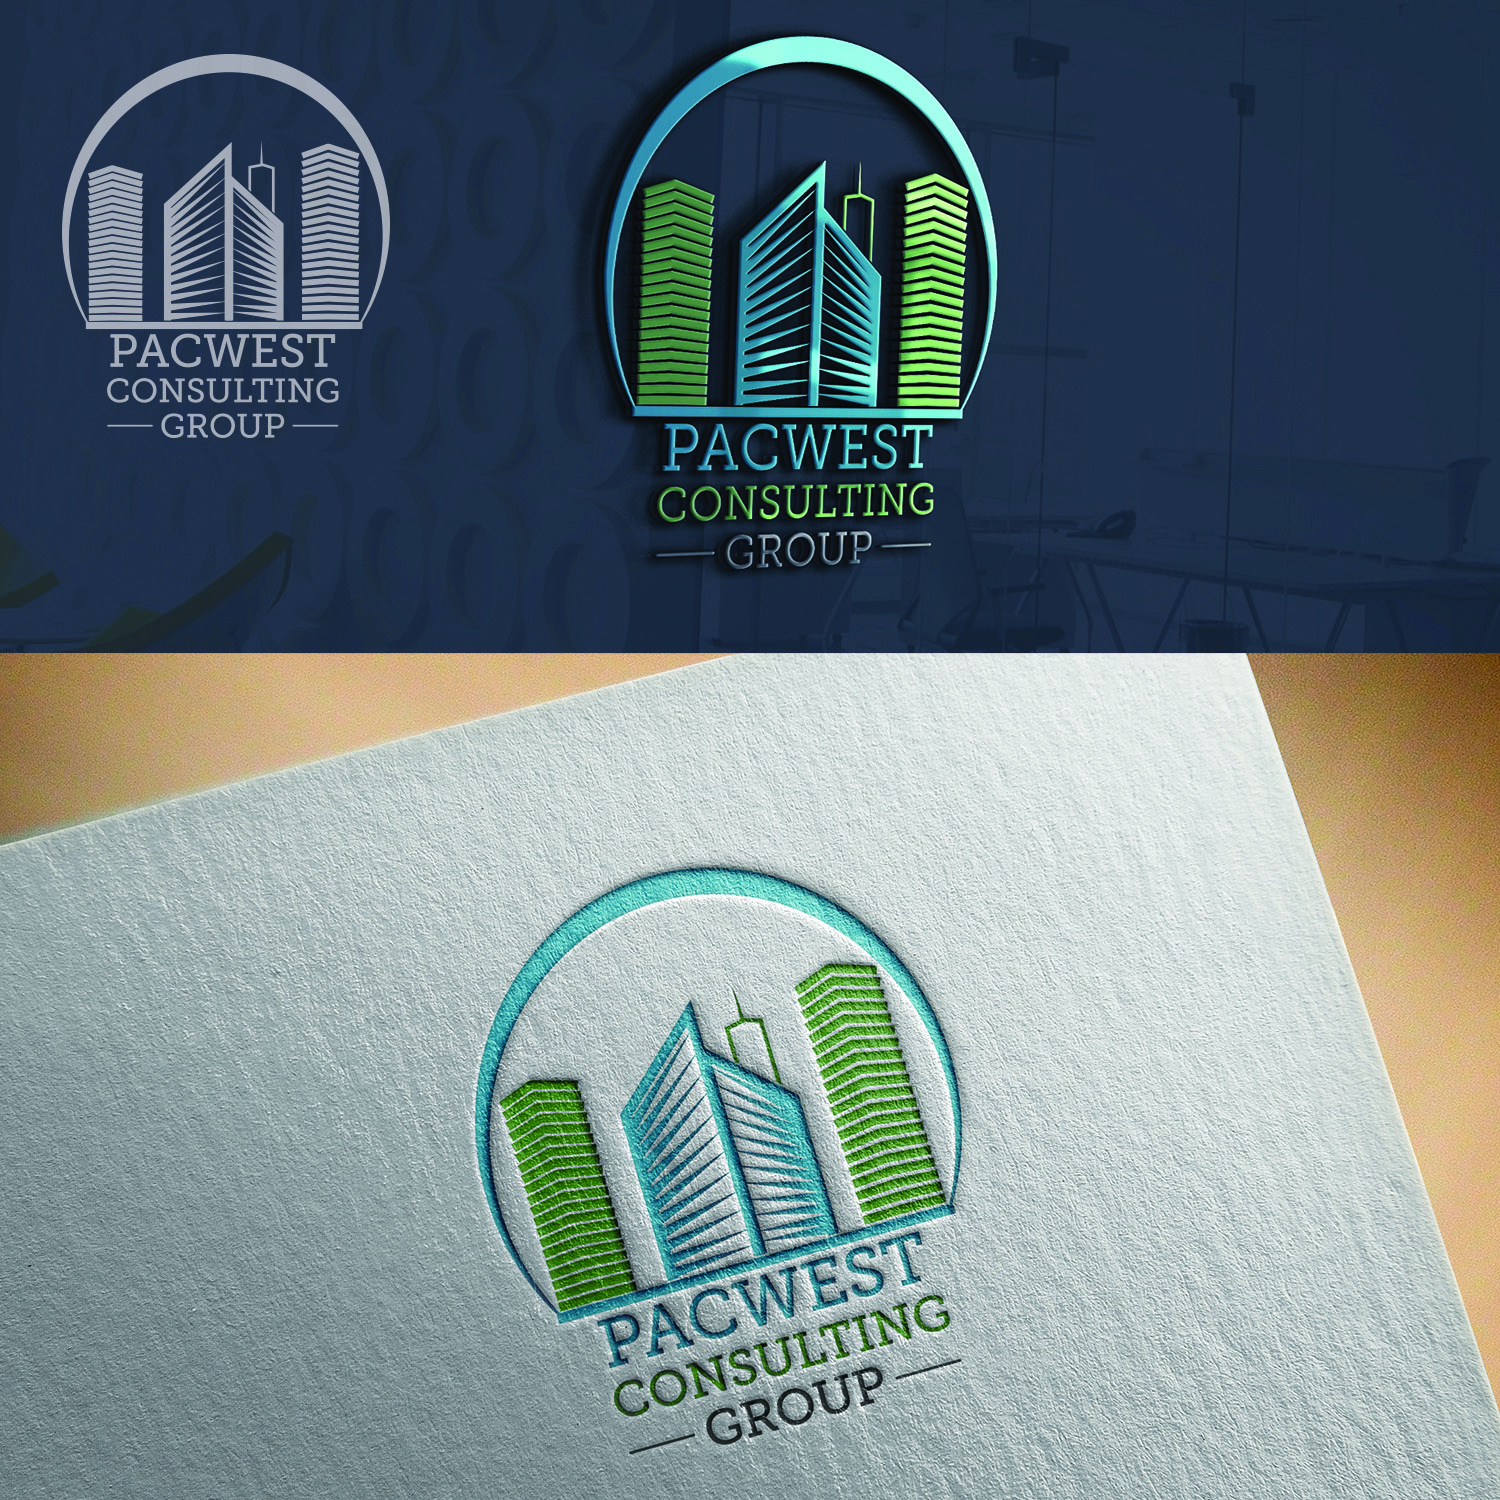 Logo Design by Umair ahmed Iqbal - Entry No. 83 in the Logo Design Contest Imaginative Logo Design for Pacwest Consulting Group.